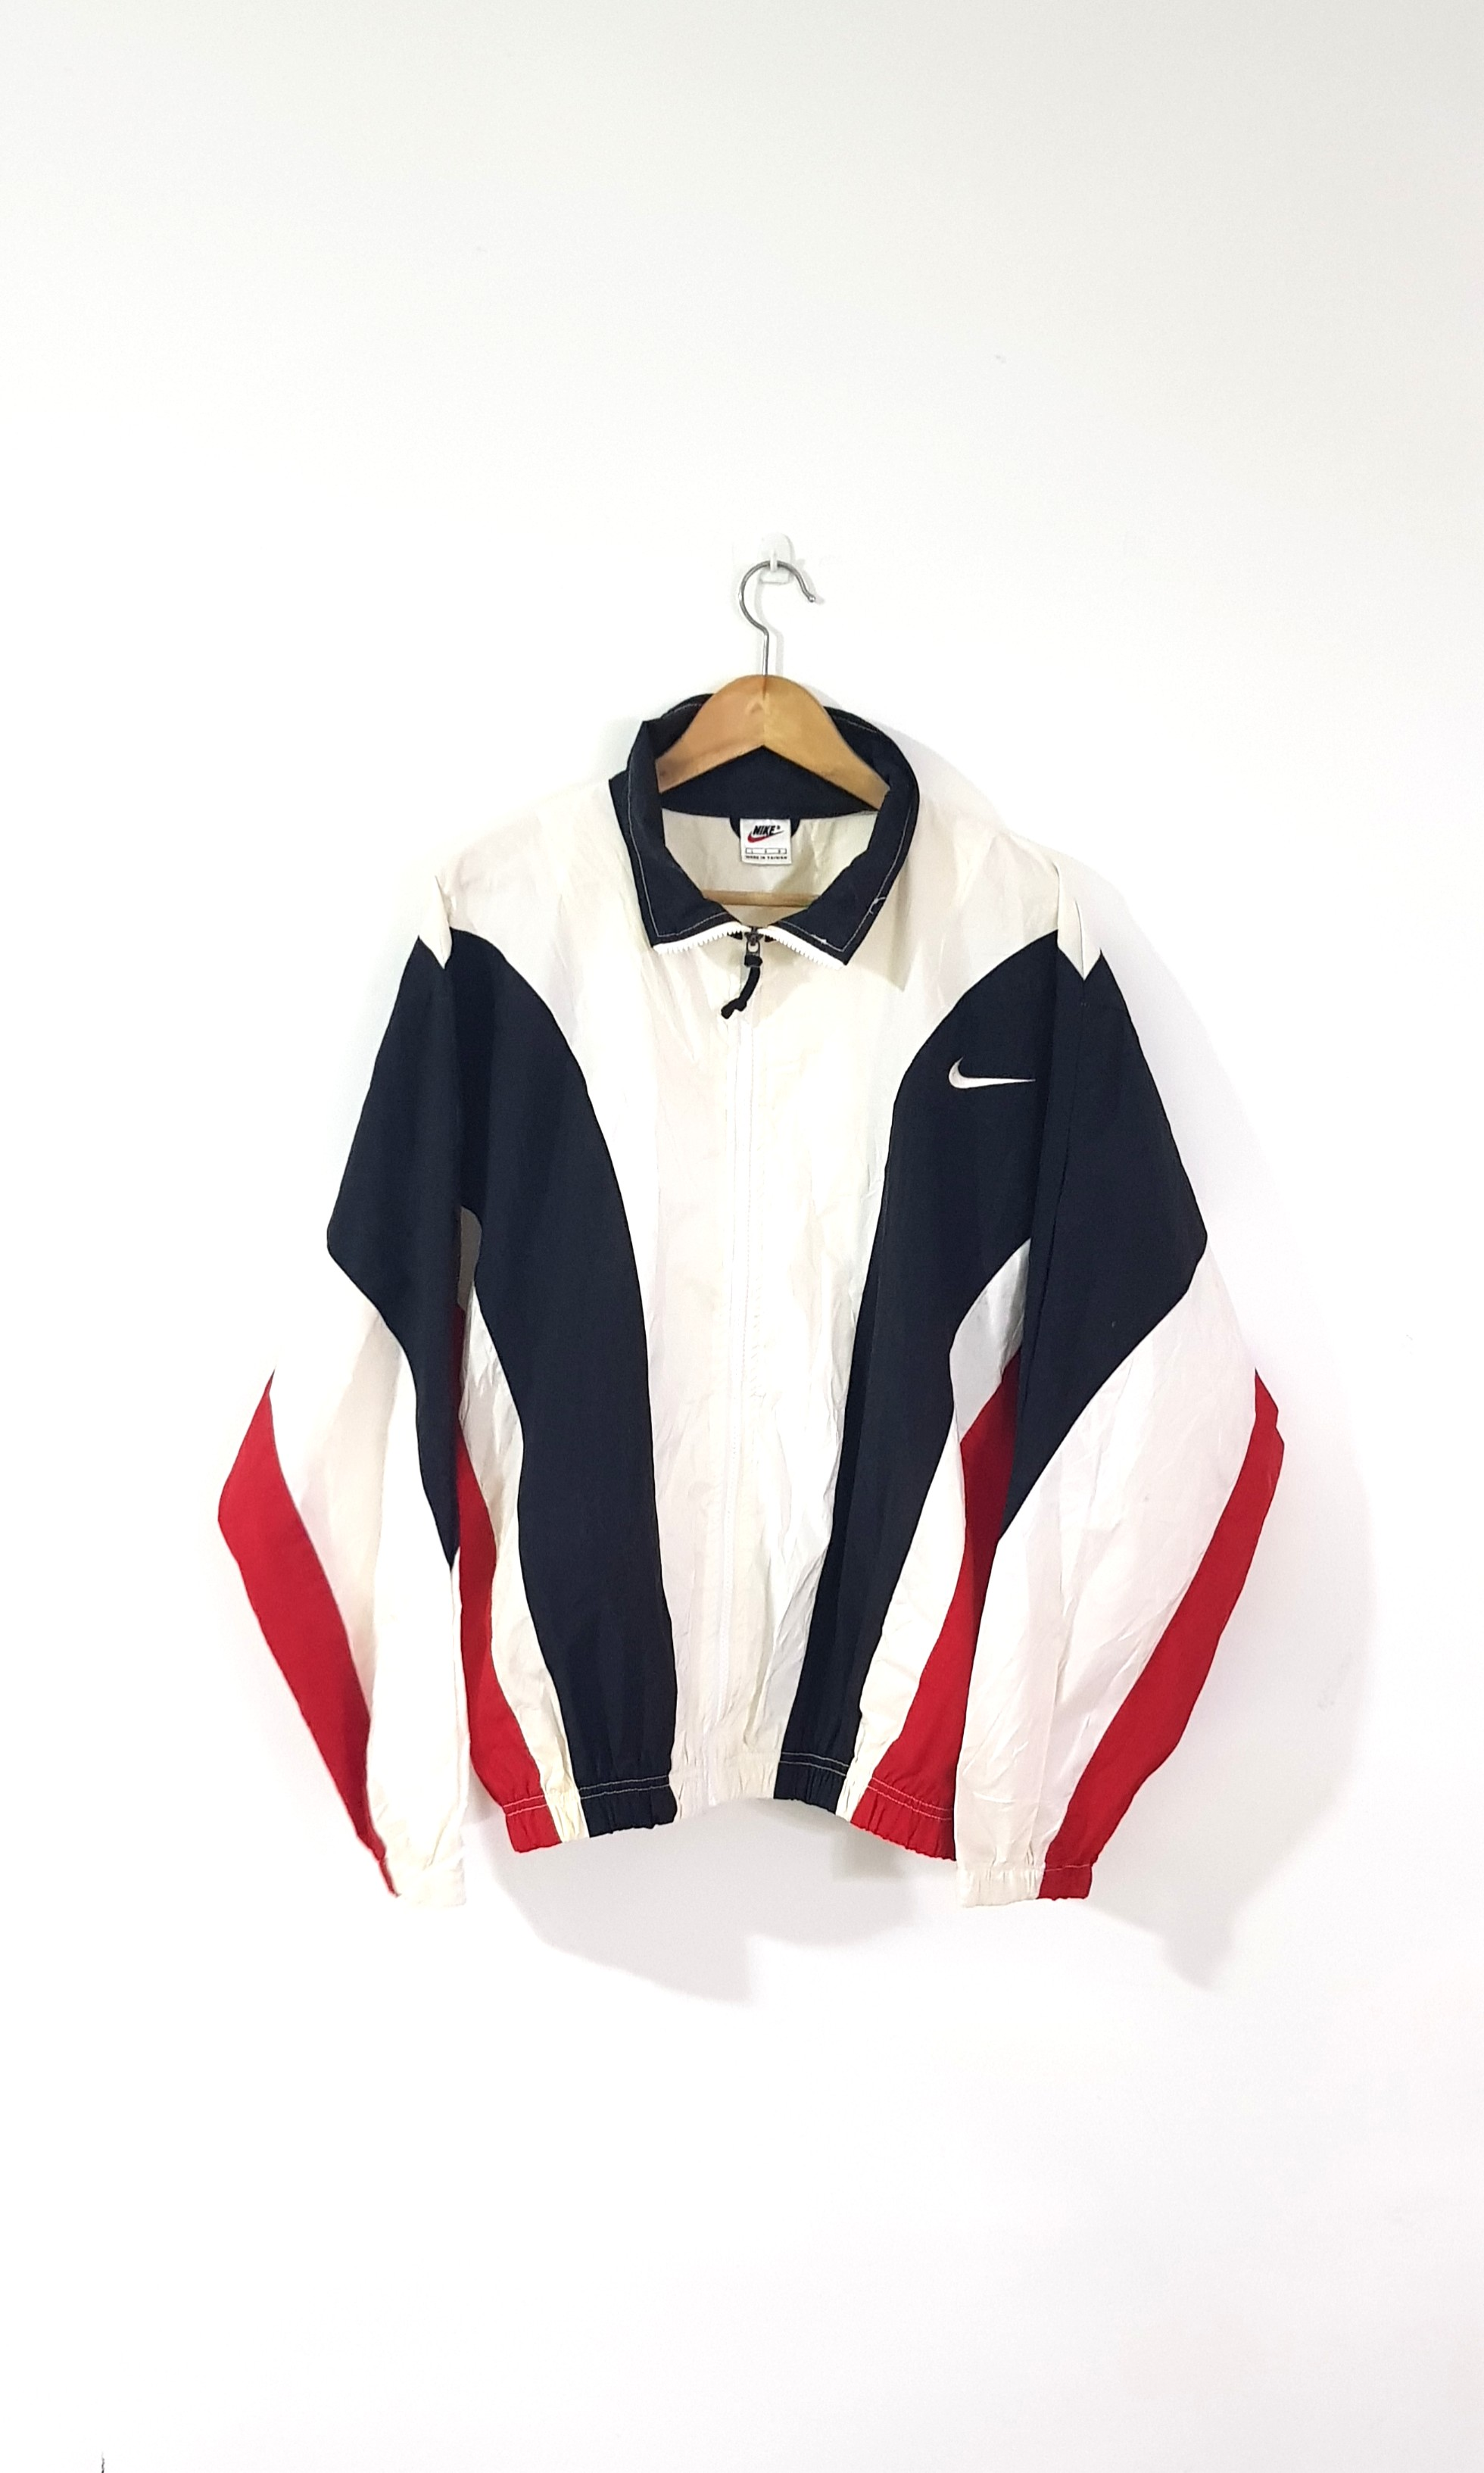 cd59b150 Vintage Nike 90s Colour Block Windbreaker, Men's Fashion, Clothes,  Outerwear on Carousell